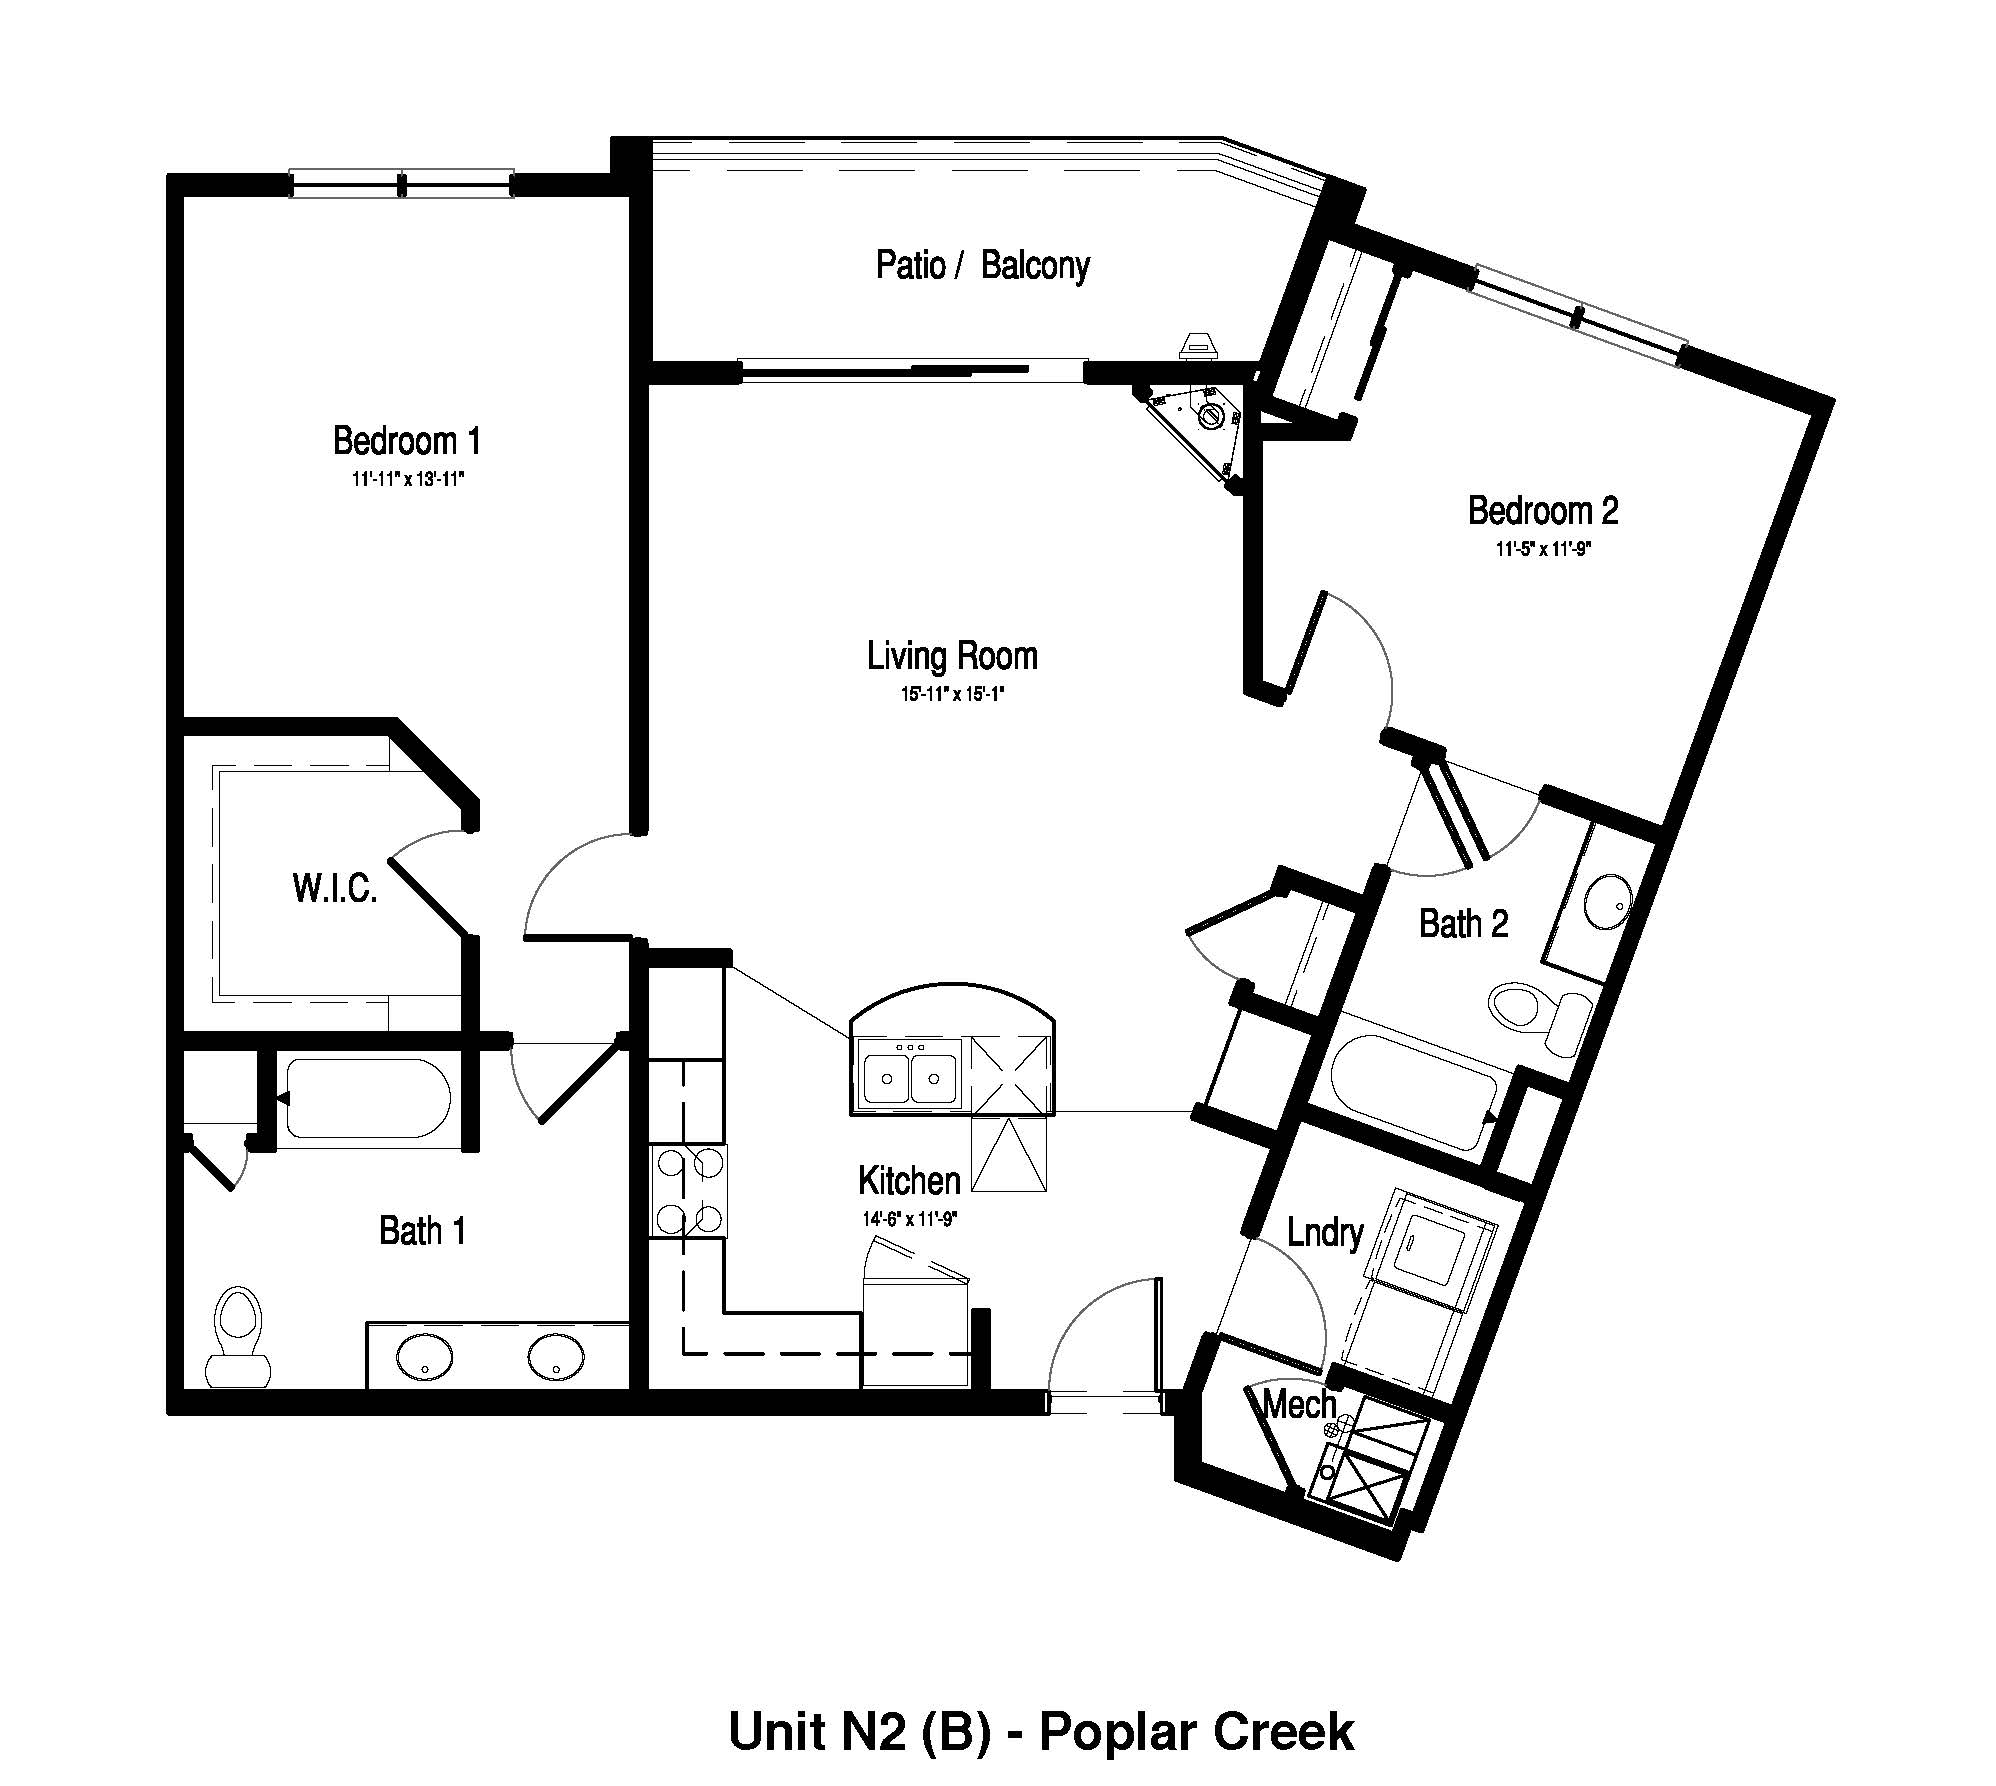 2 Bedroom,  2 Bath - 1,221 Sq. Ft. - Poplar Creek